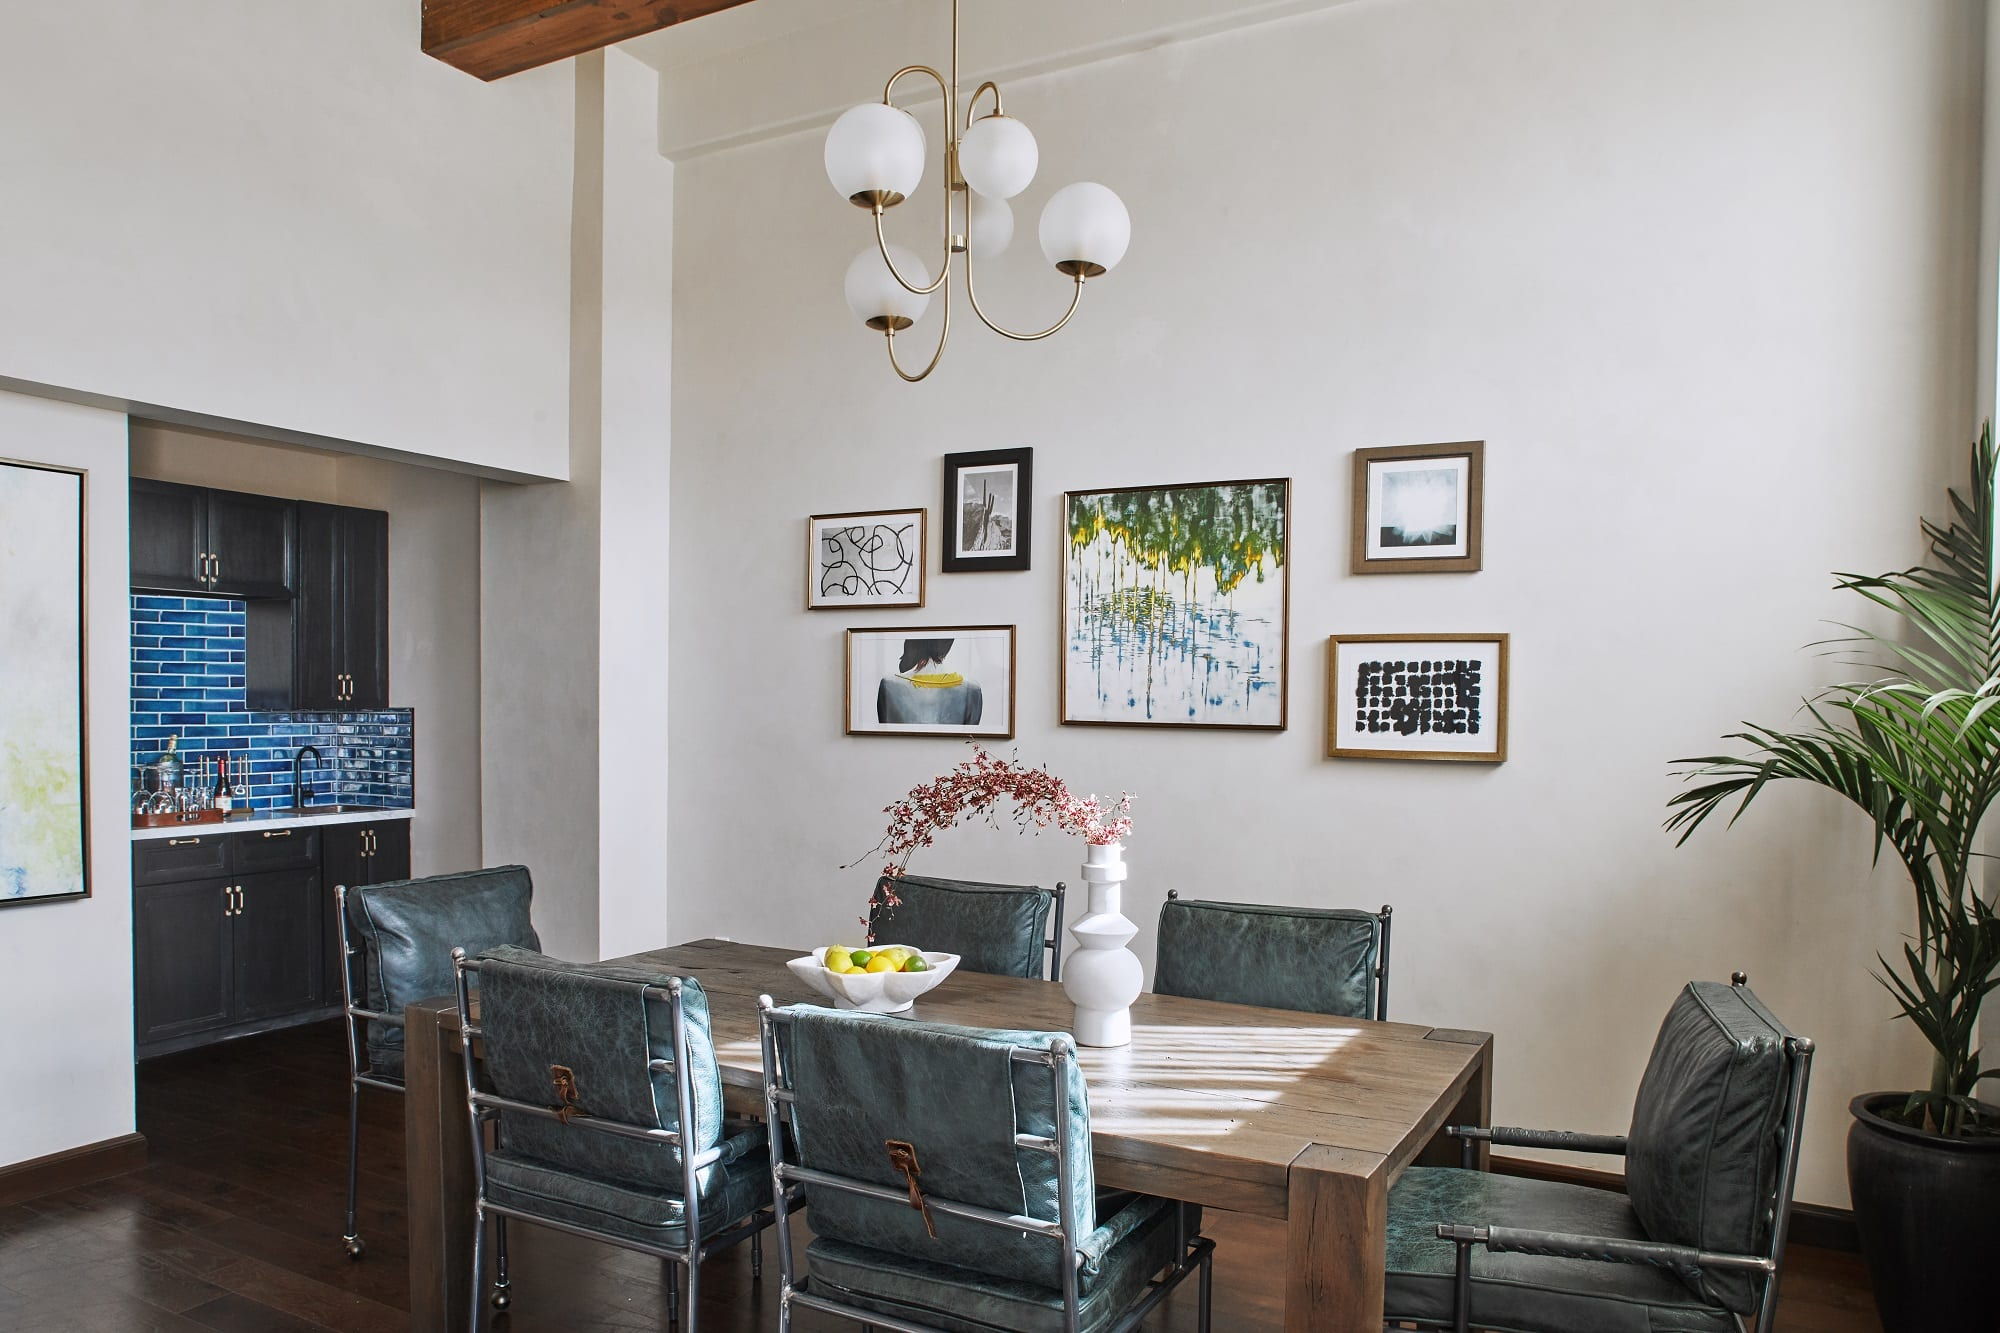 dining room with high ceiling, table with chairs and bar sink